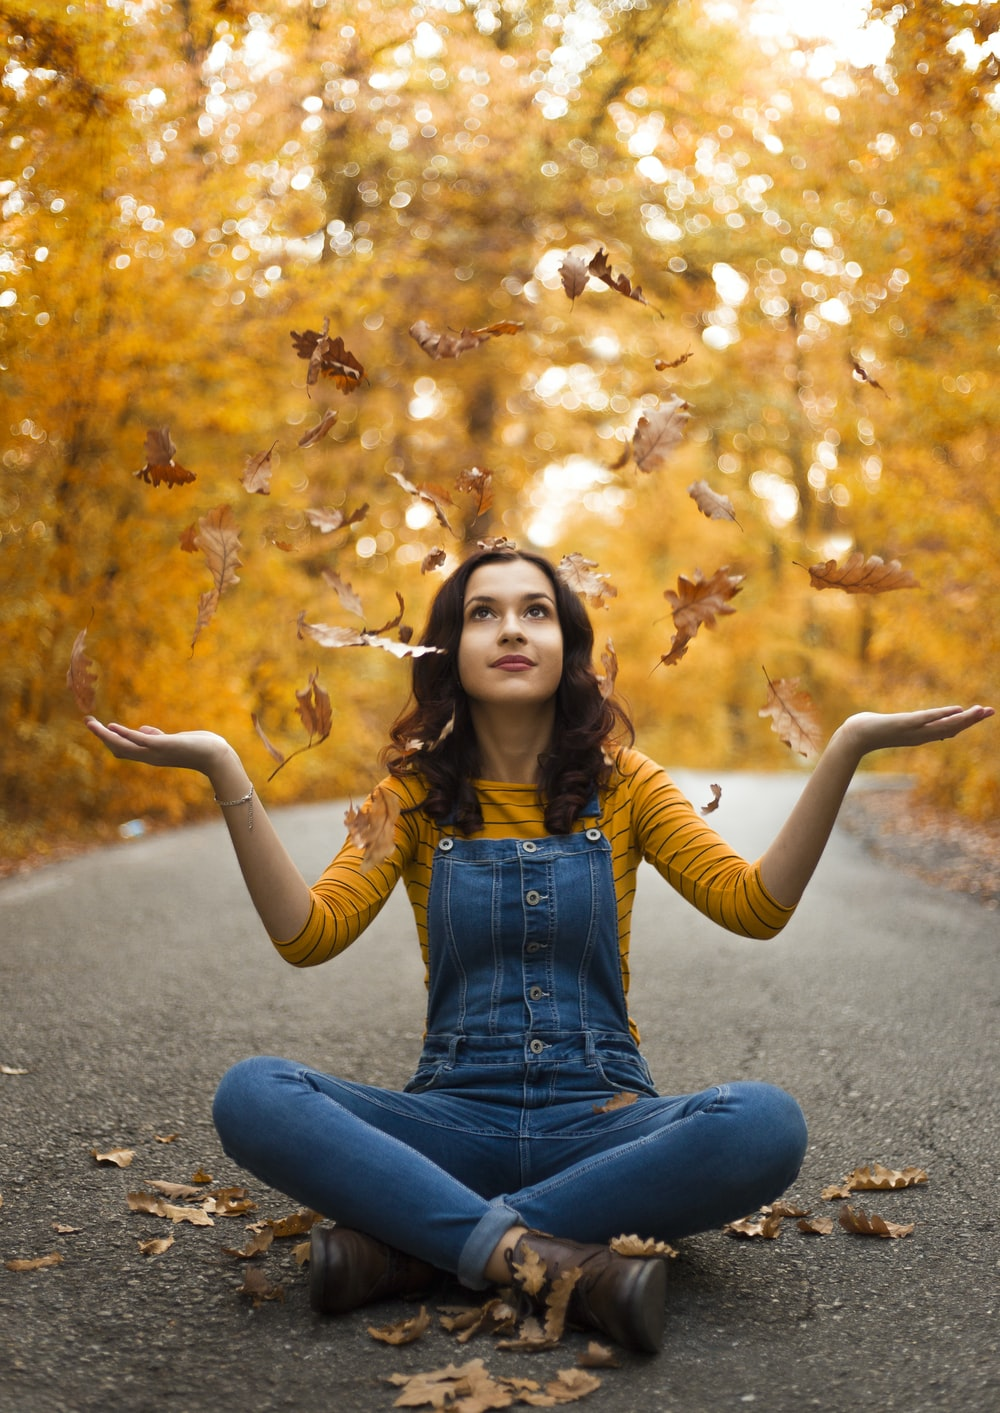 sitting person with crossed legs throwing leaves on air